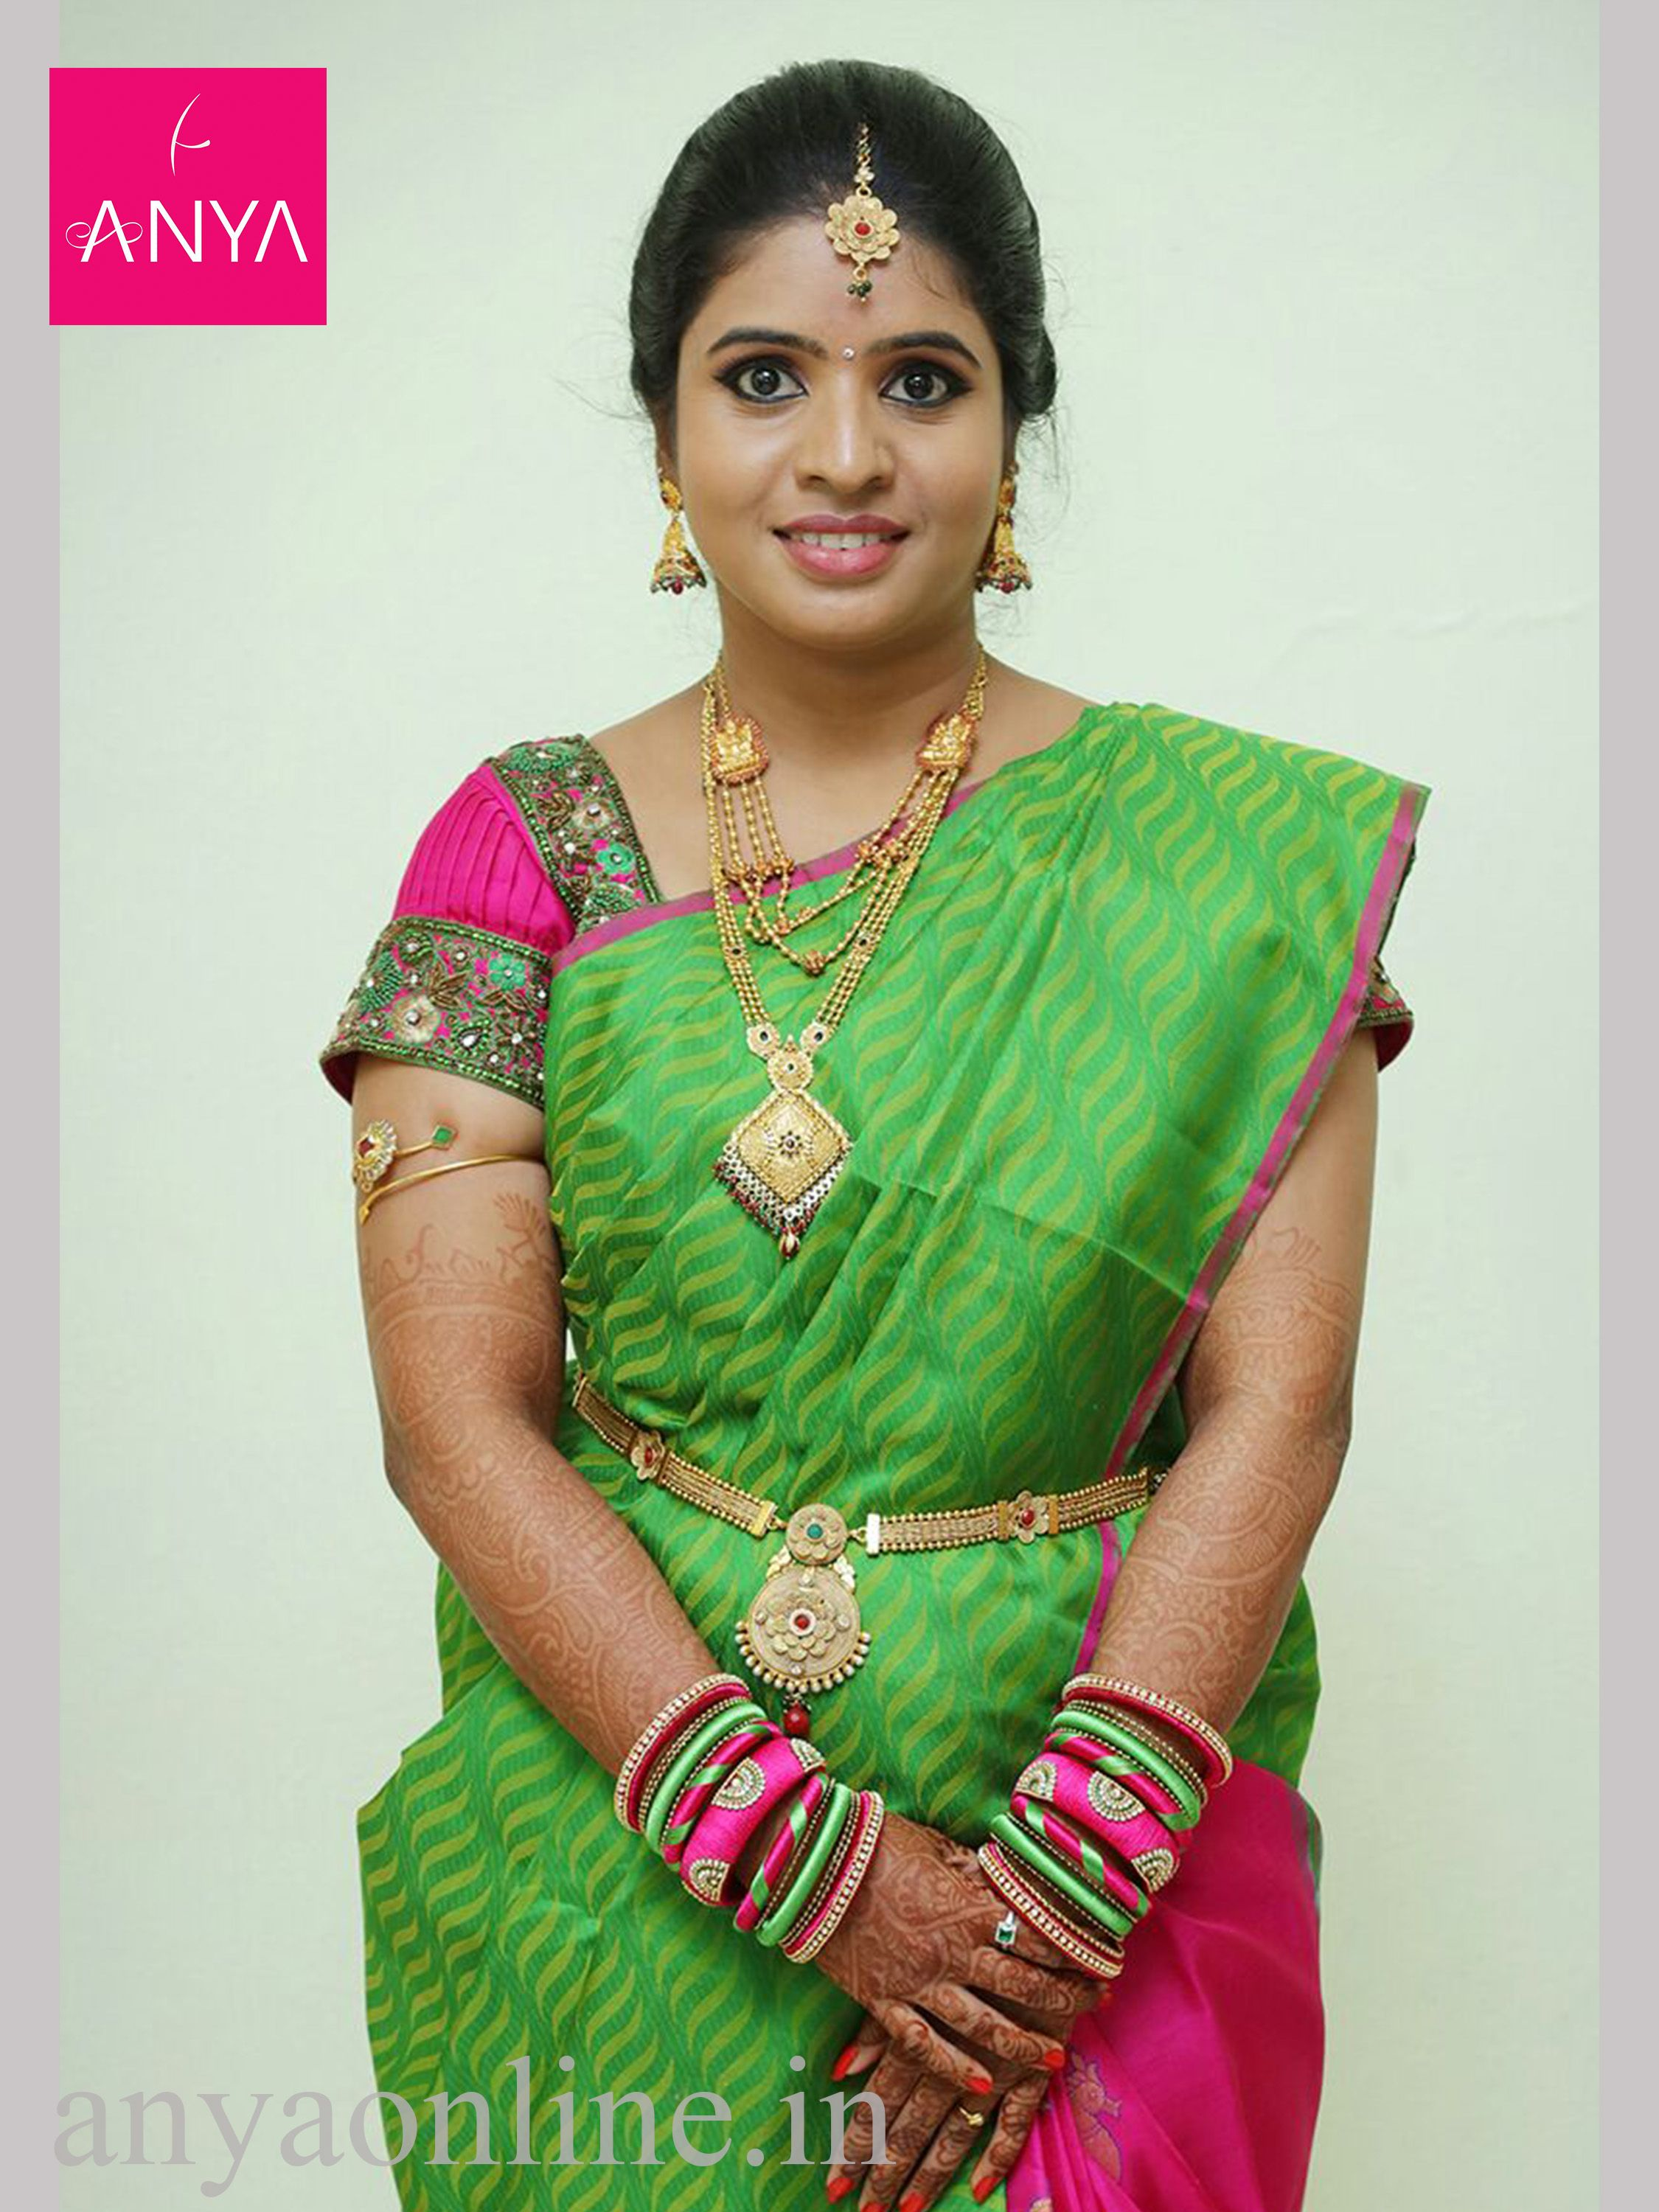 0aad9a02ee Anya provides best collection of customised blouses designer blouses,  embroidery blouses in coimbatore